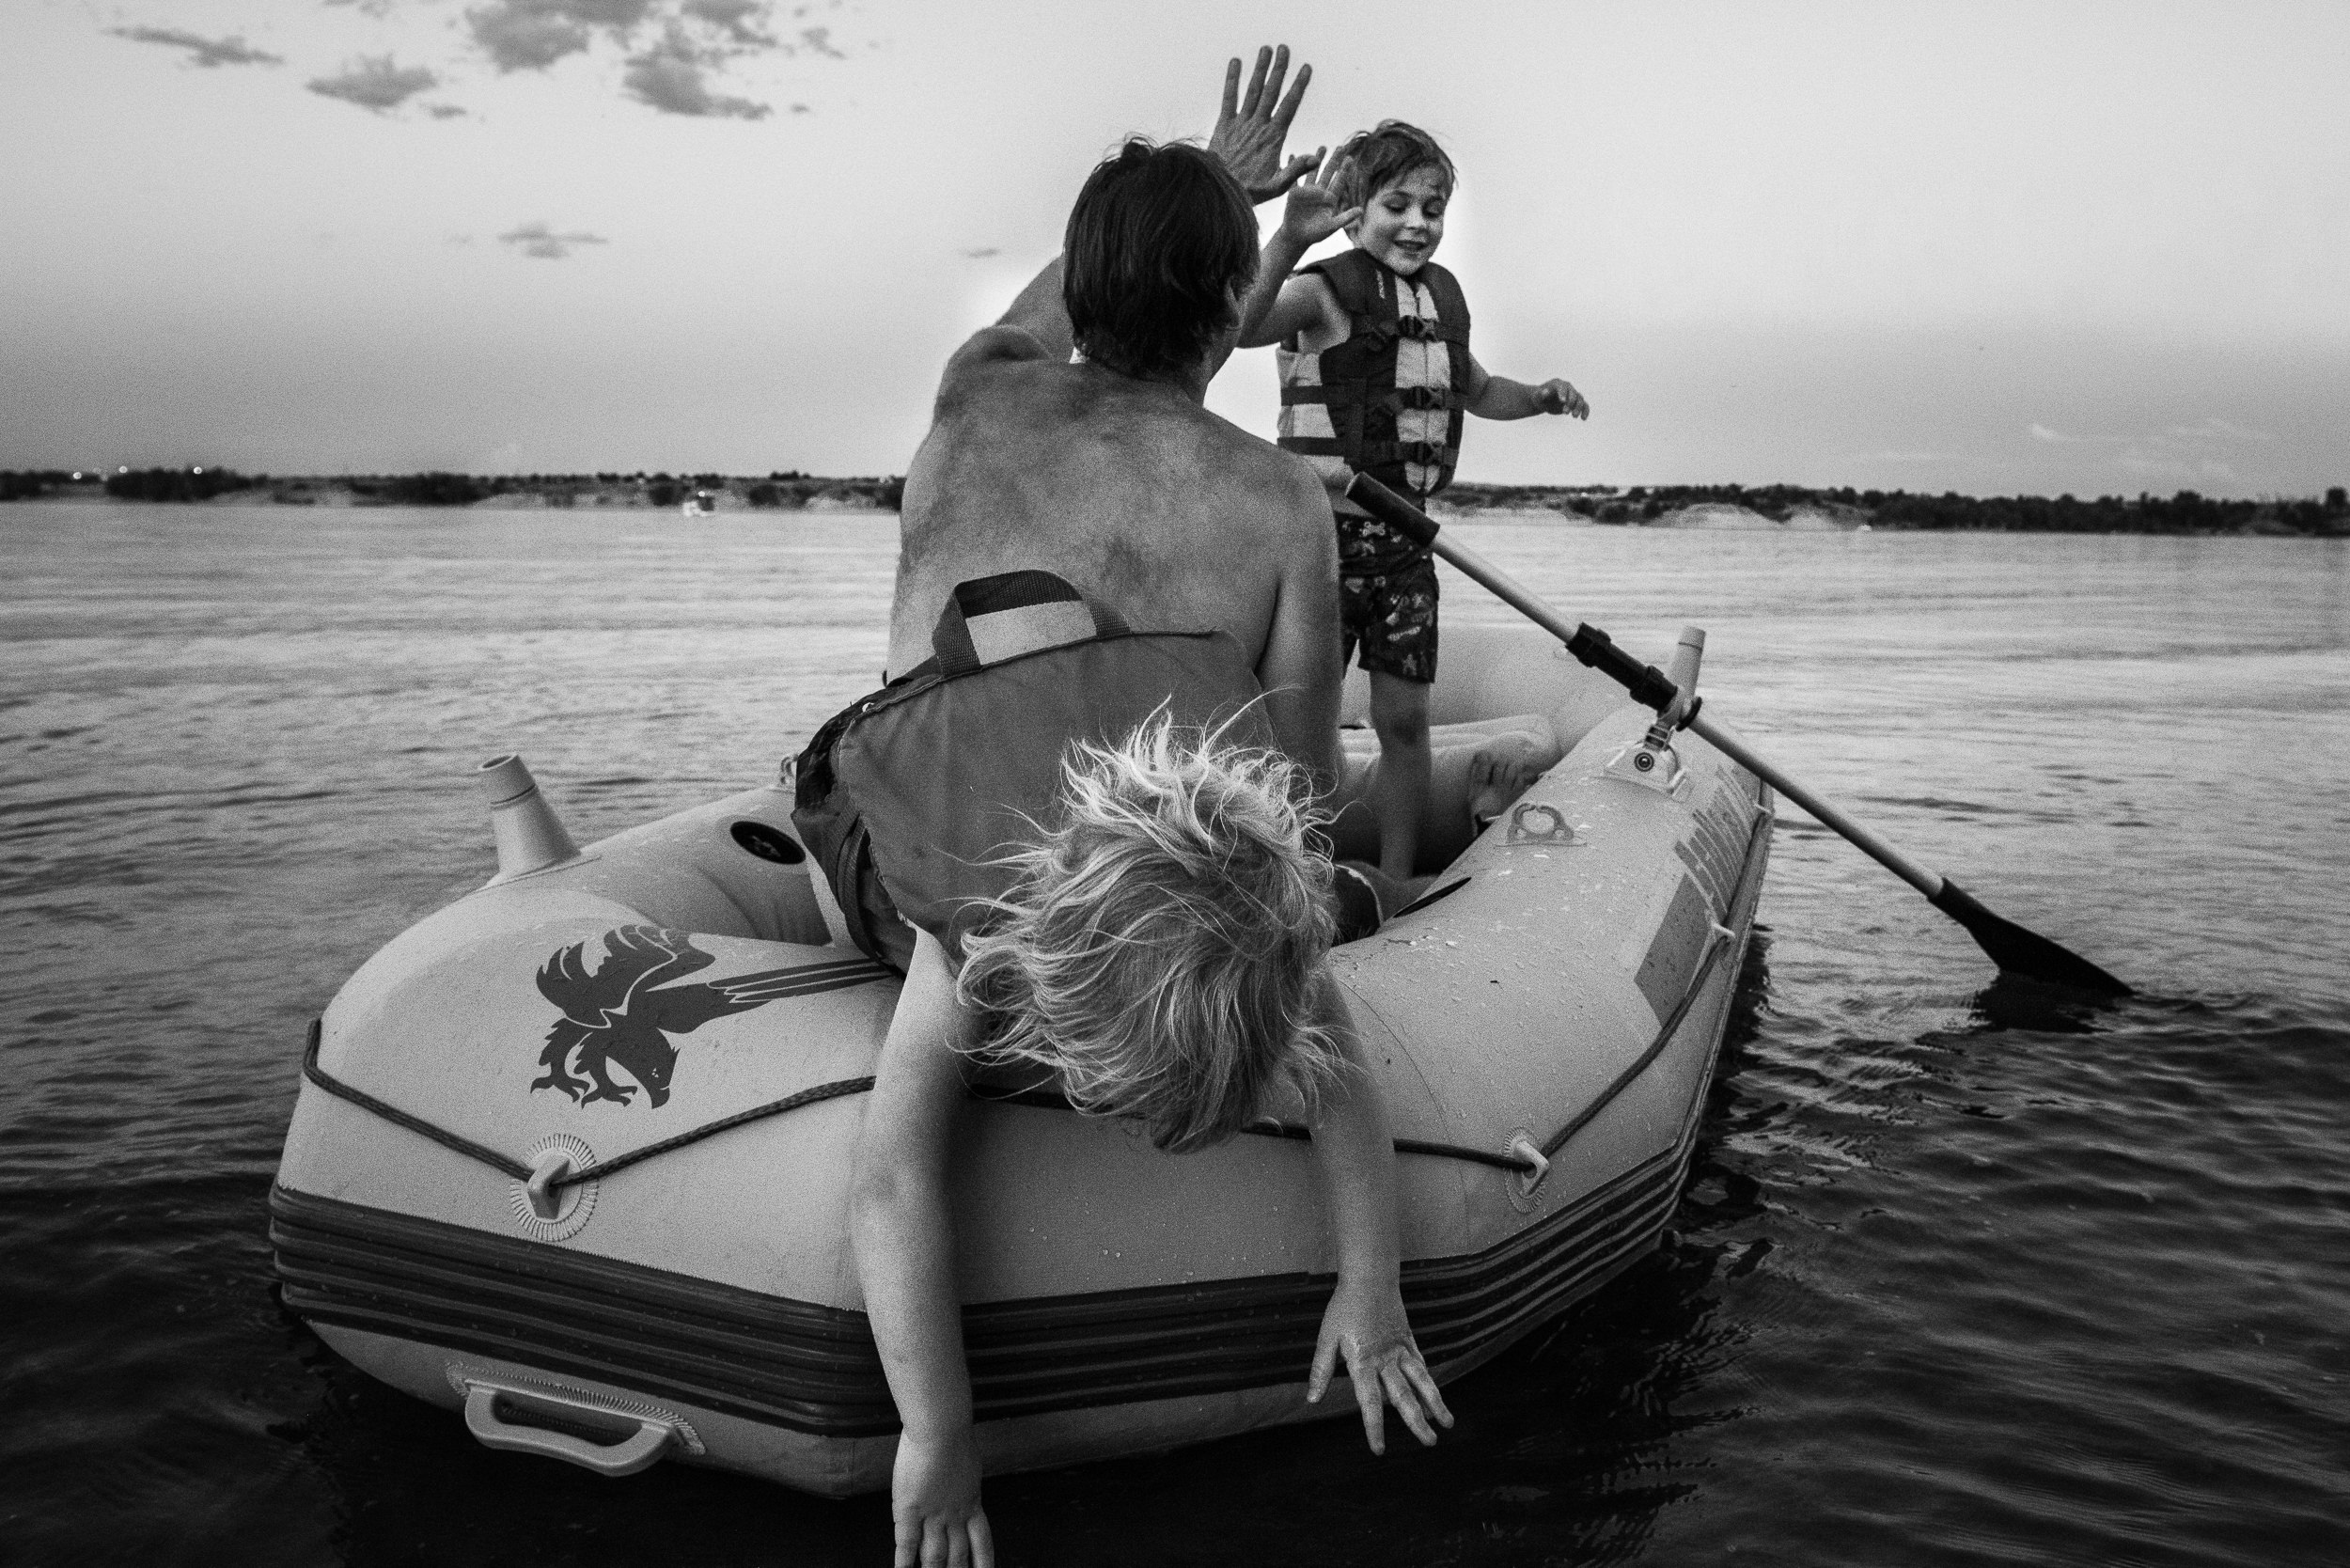 Blog - The Pen & Camera - Molly Rees Photo - Black and White Documentary Childhood Photography - children in raft giving high-five at Chatfield Reservoir in Denver, Colorado by M. Menschel